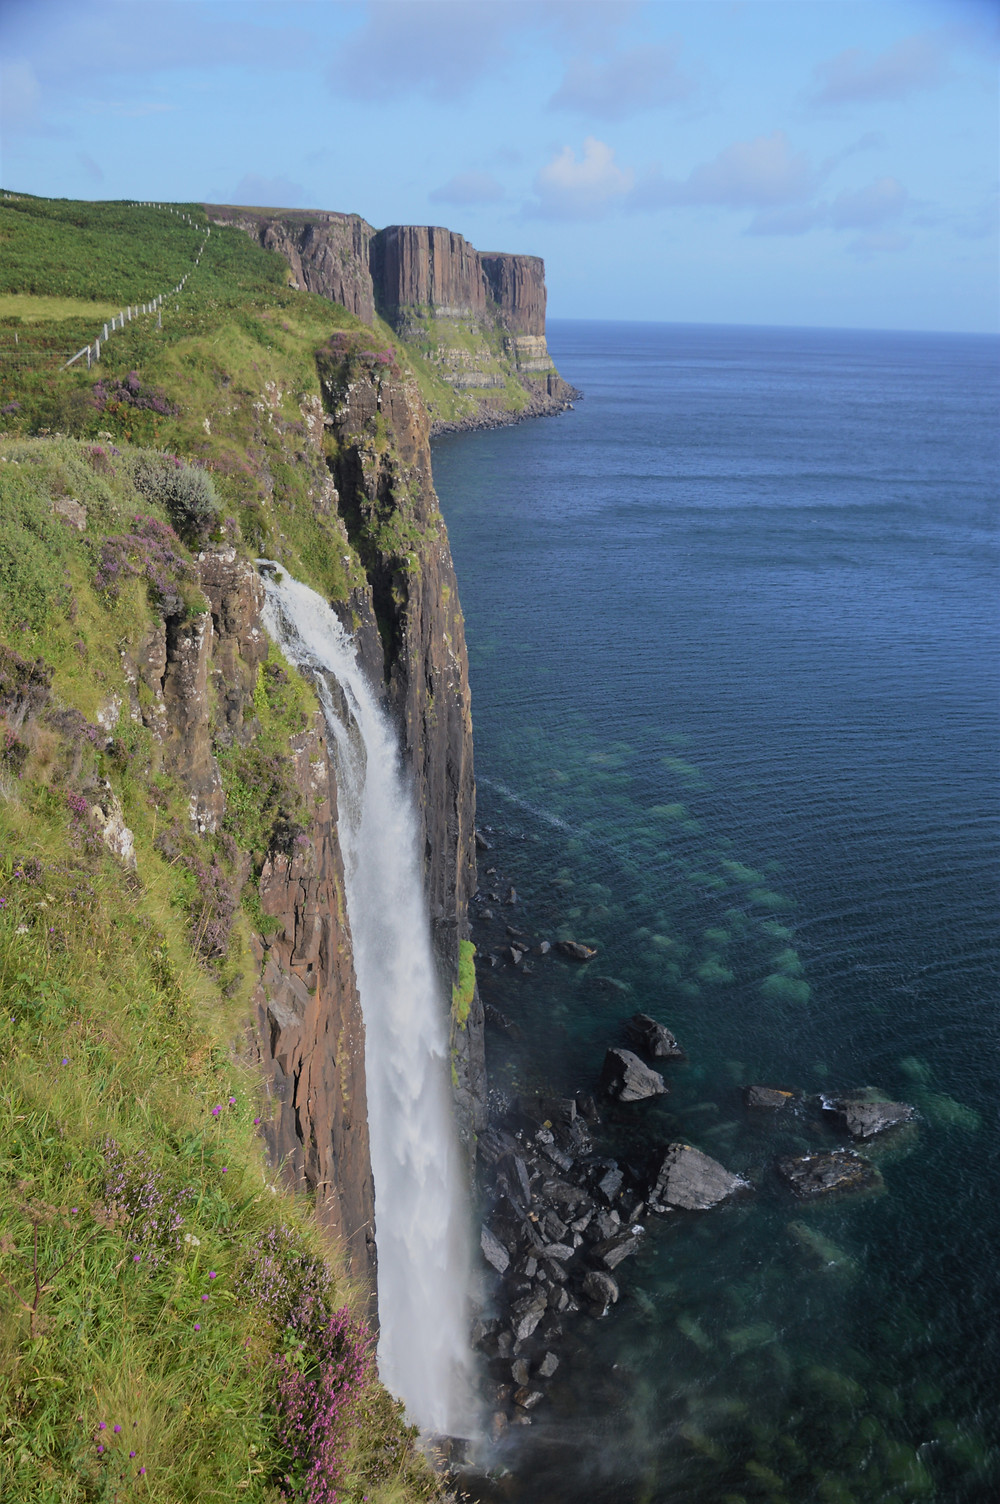 Waters of Mealt Falls plunging over the sea cliffs into the Atlantic Ocean